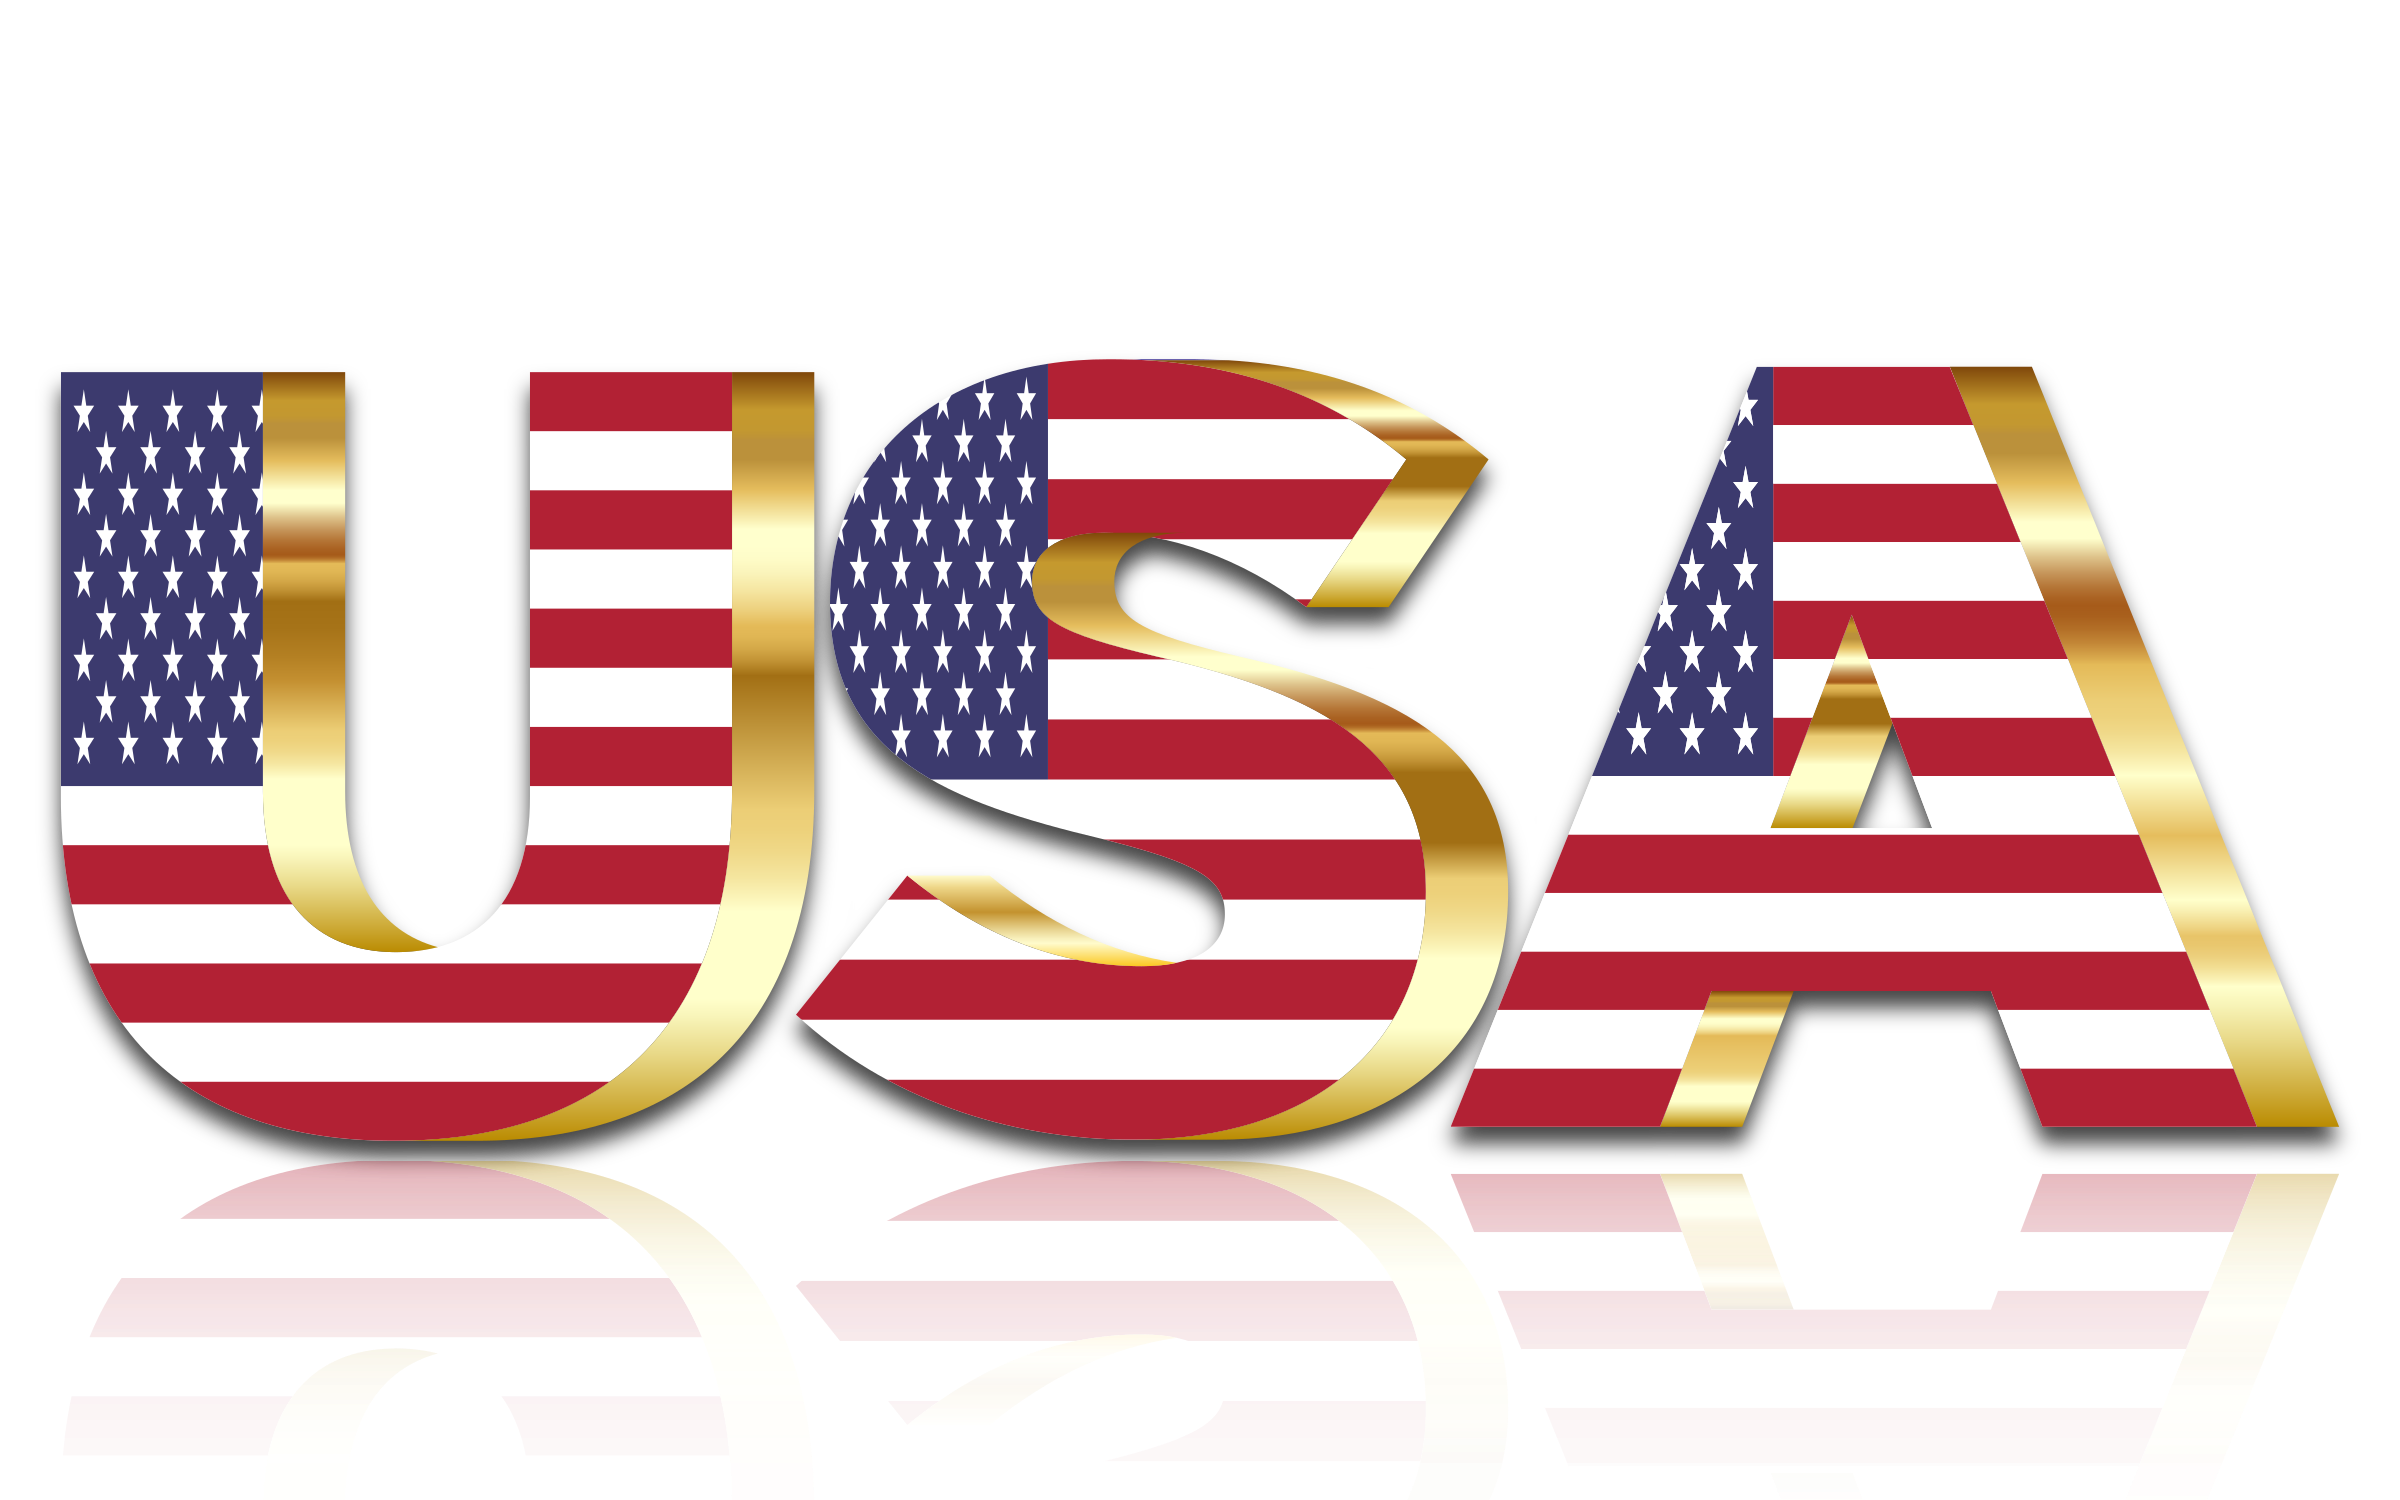 USA Flag Typography Gold With Reflection No Background by GDJ